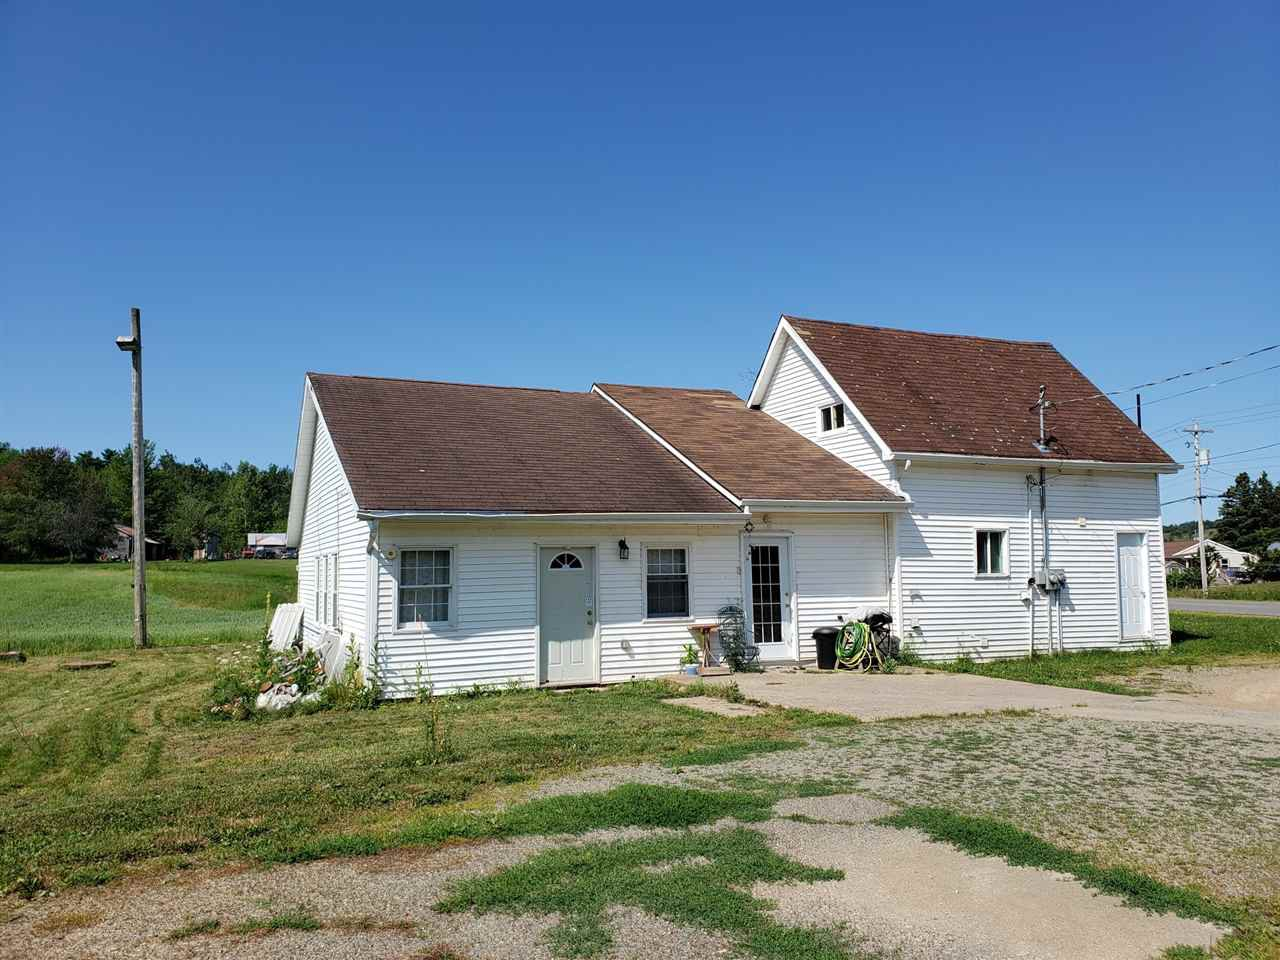 Main Photo: A & B 5074 Prospect Road in Highbury: 404-Kings County Multi-Family for sale (Annapolis Valley)  : MLS®# 202015629